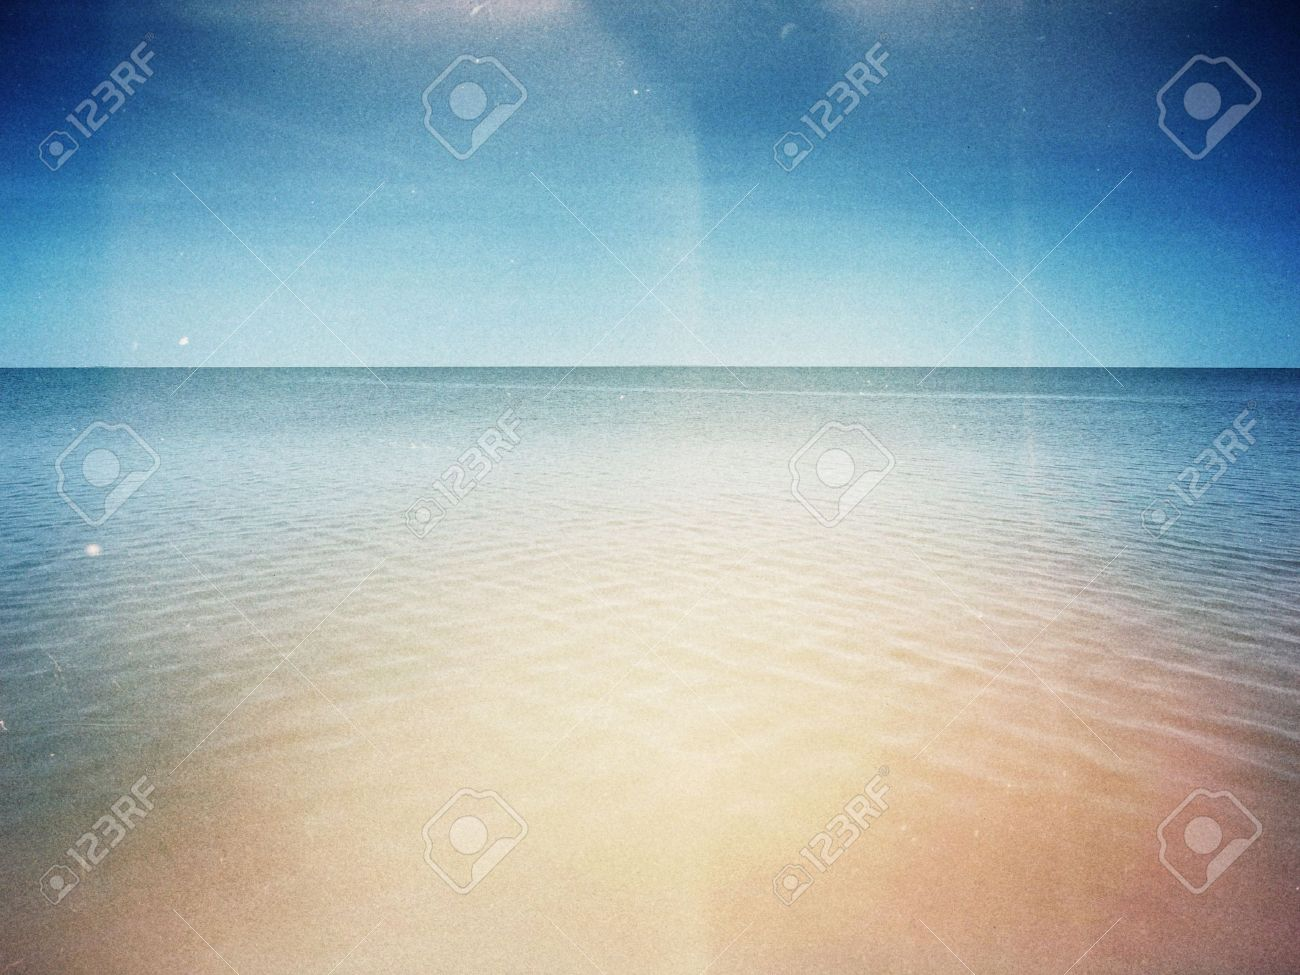 Designed retro photo. Sunny day on the beach. Grain, dust, colors added as vintage effect. Stock Photo - 11312130